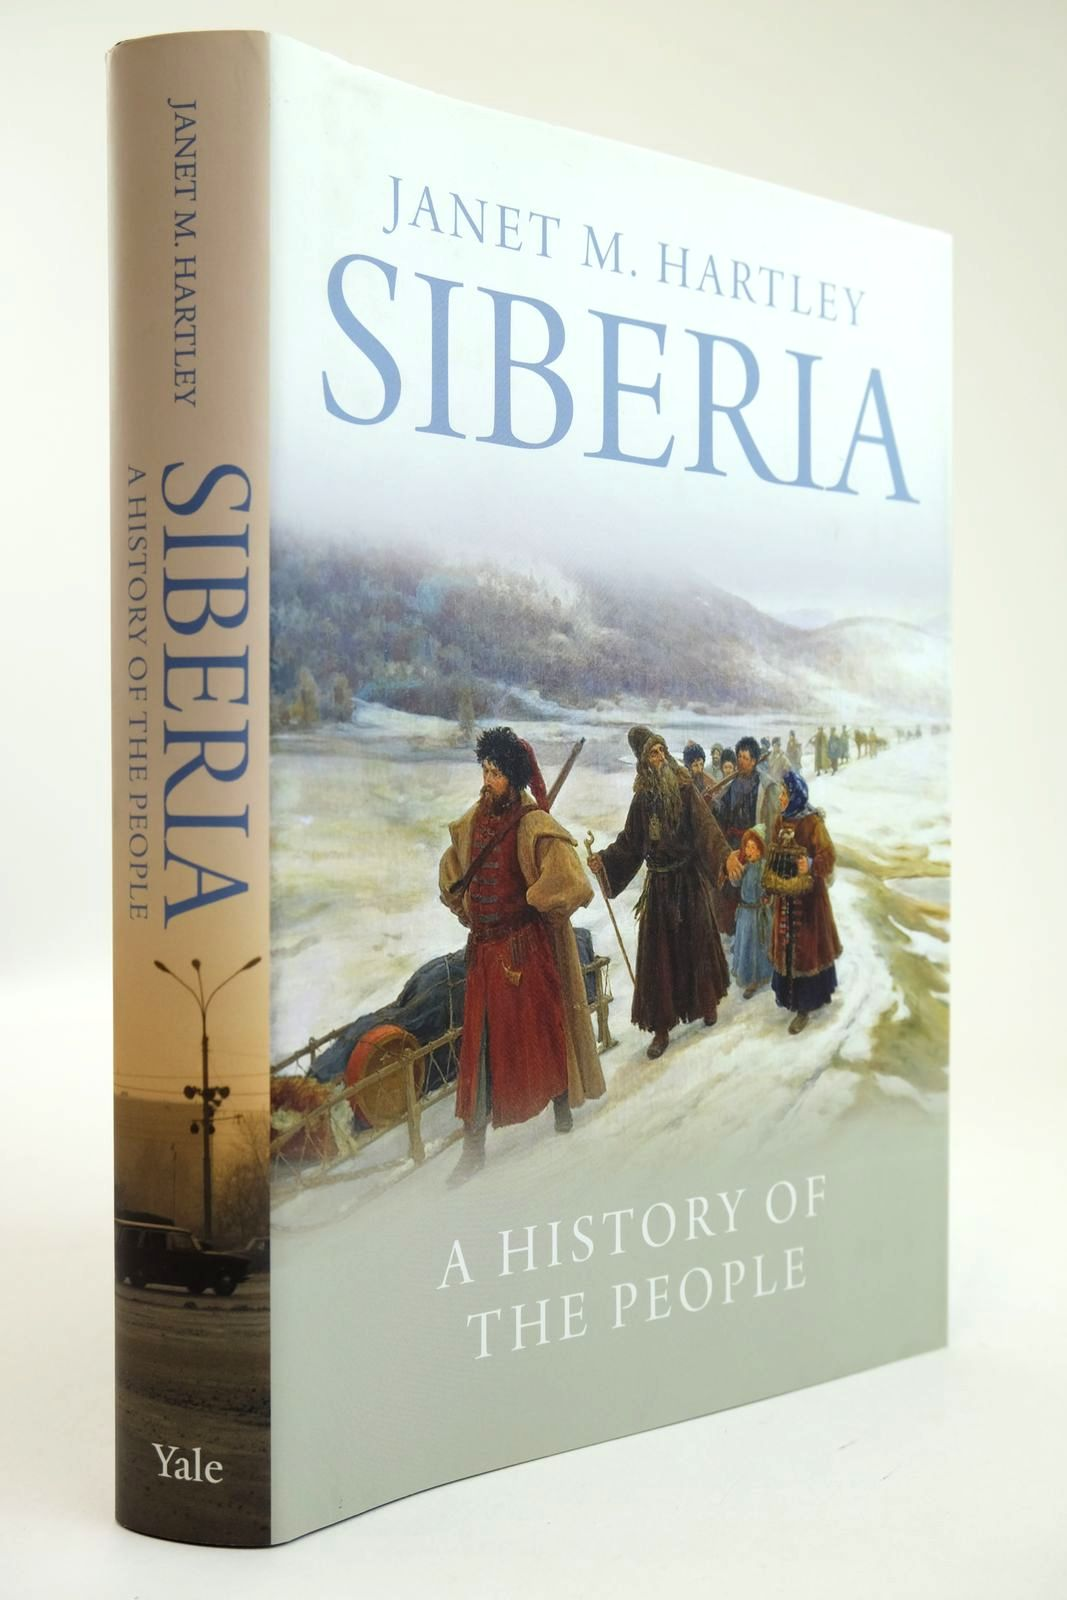 Photo of SIBERIA A HISTORY OF THE PEOPLE written by Hartley, Janet M. published by Yale University Press (STOCK CODE: 2132122)  for sale by Stella & Rose's Books